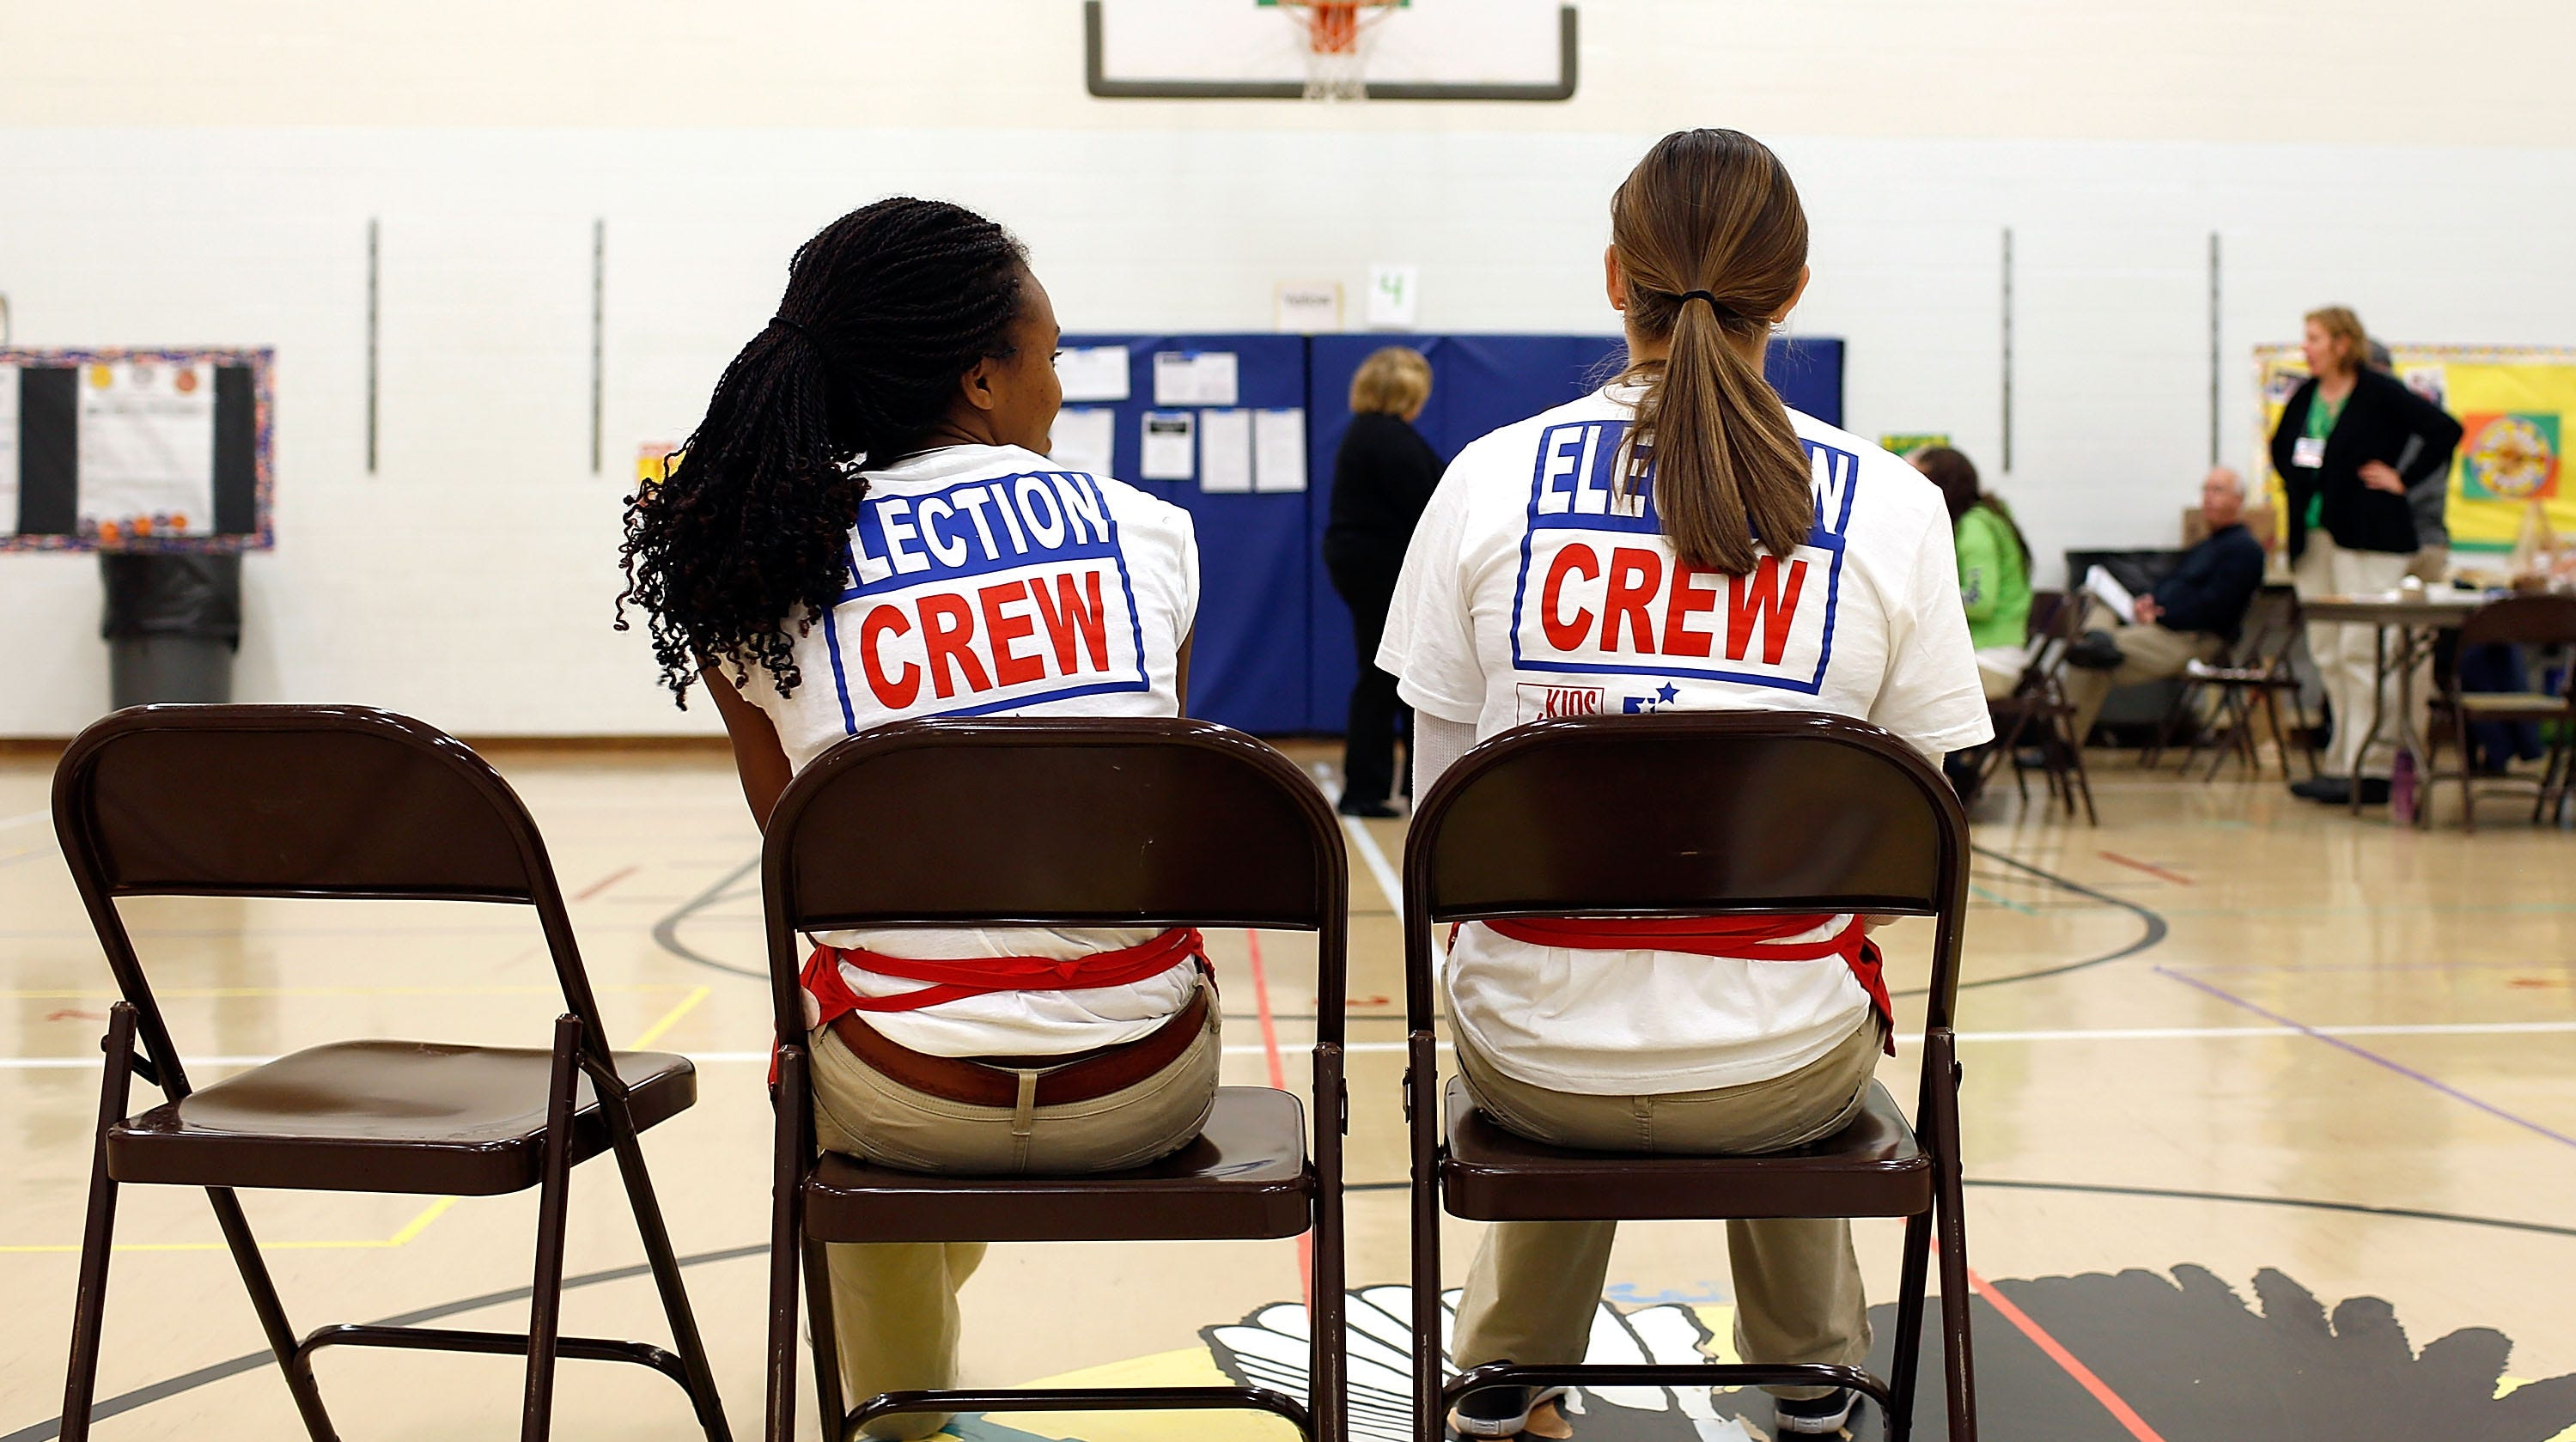 Kaylee Taylor (left) and Amber Taylor (no relation), both 17 and of Dublin, Ohio, wait to assist voters voting at the Wyandot Elementary School in Dublin, Ohio on Tuesday, November 6, 2012. Both girls were working for Youth at the Booth, a program that allows high school seniors to work at polling stations and gives them an opportunity to be involved in the polling process.